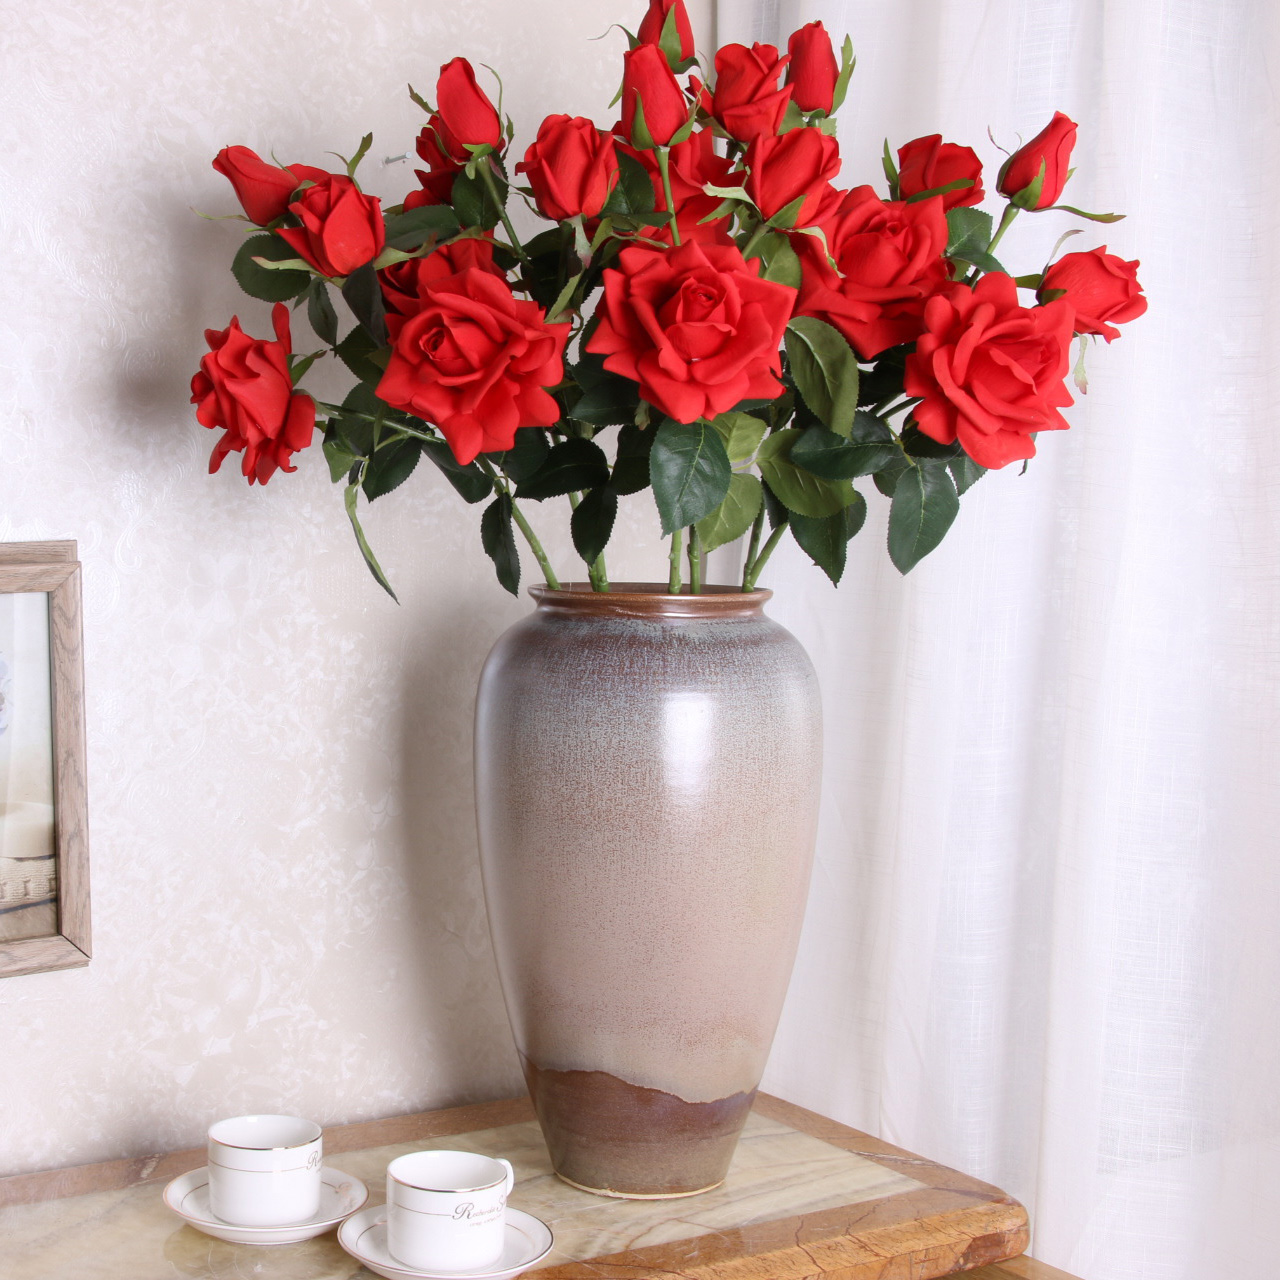 Artificial Red Roses Fake Flowers For Home Decoration